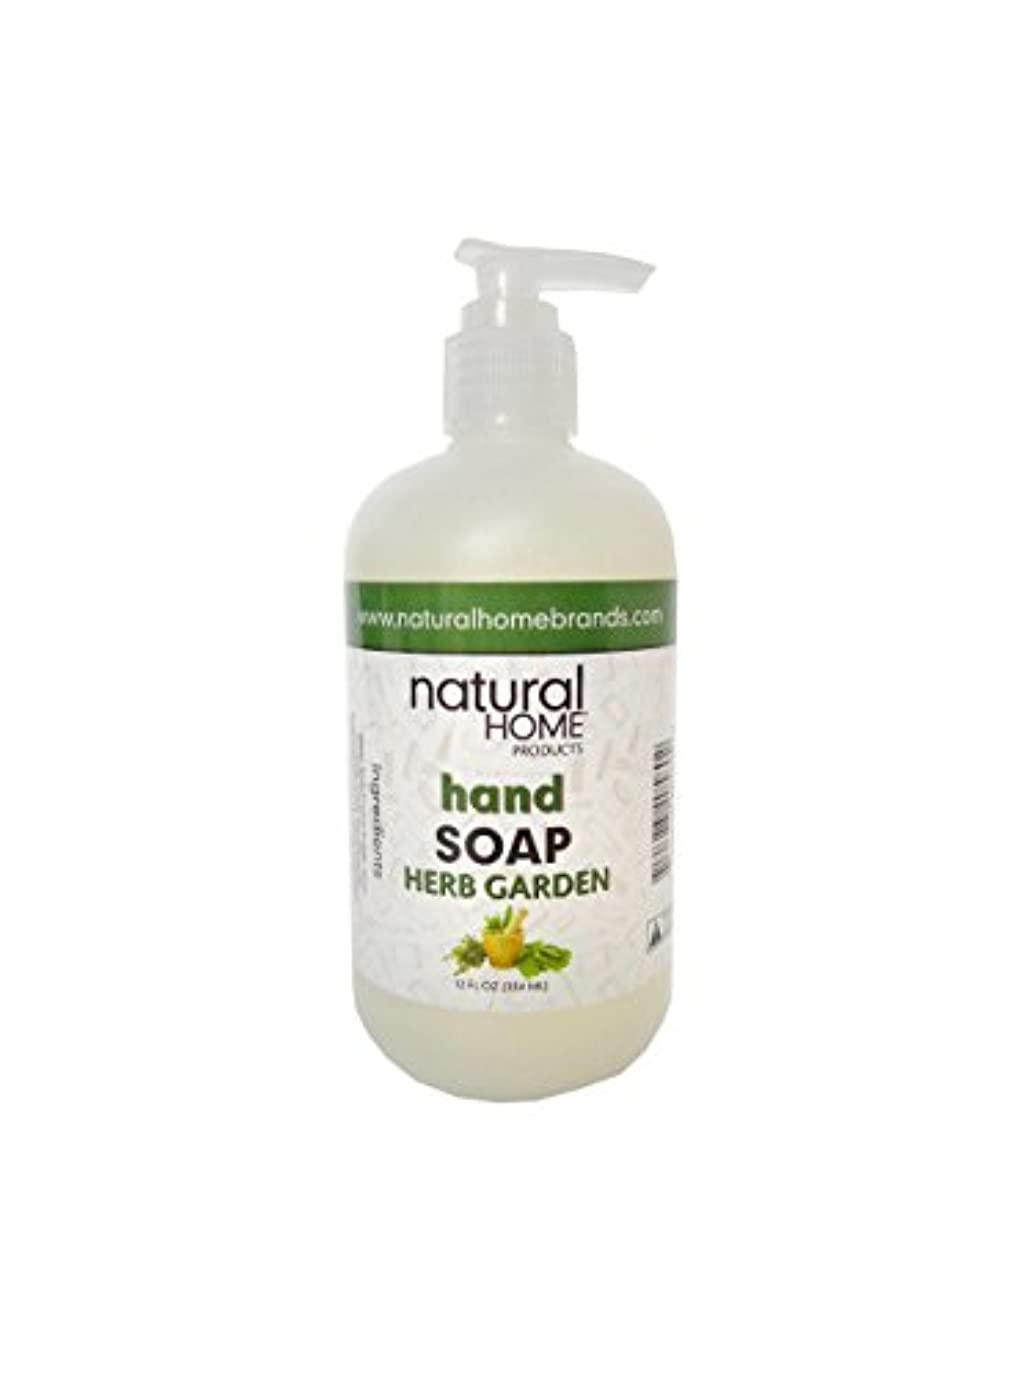 凍るキャリッジ内側Natural Home Herb Garden Hand Soap, 350ml, Green